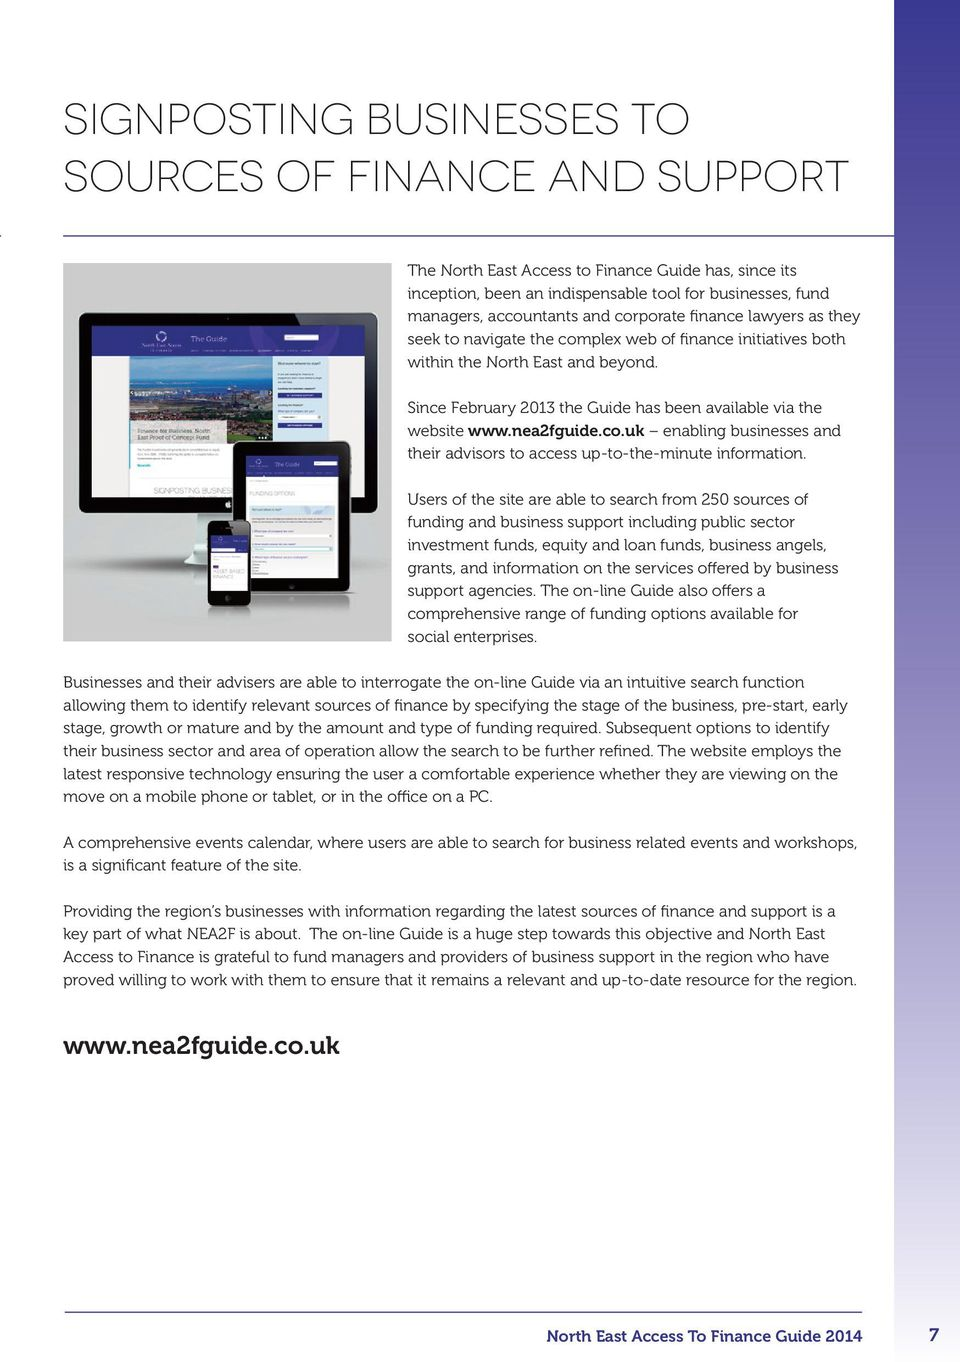 nea2fguide.co.uk enabling businesses and their advisors to access up-to-the-minute information.